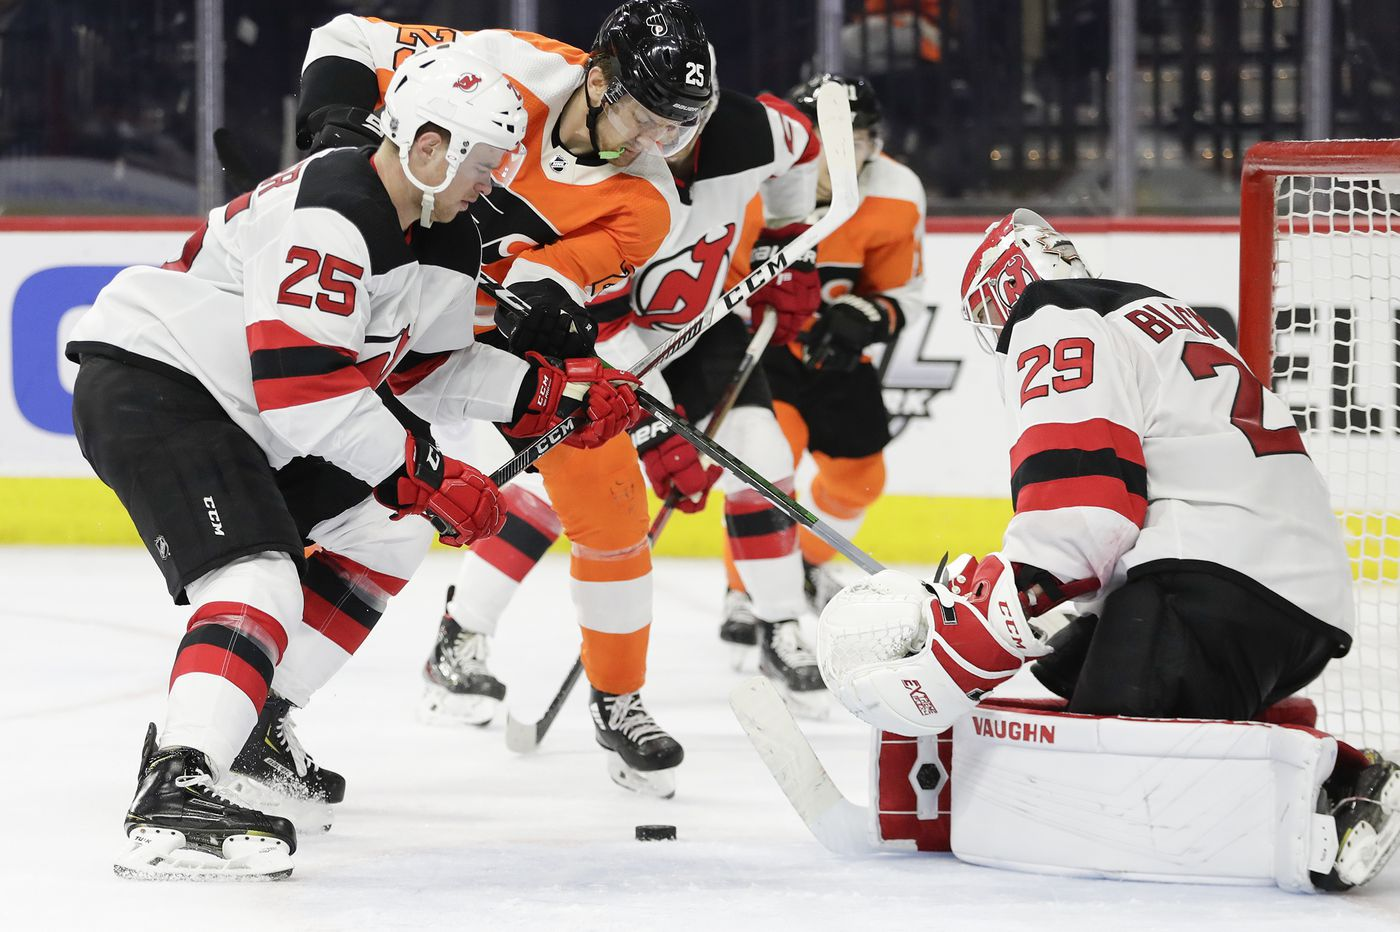 Flyers' James van Riemsdyk discusses season's uncertainty and teammate who is 'the straw that stirs the drink'